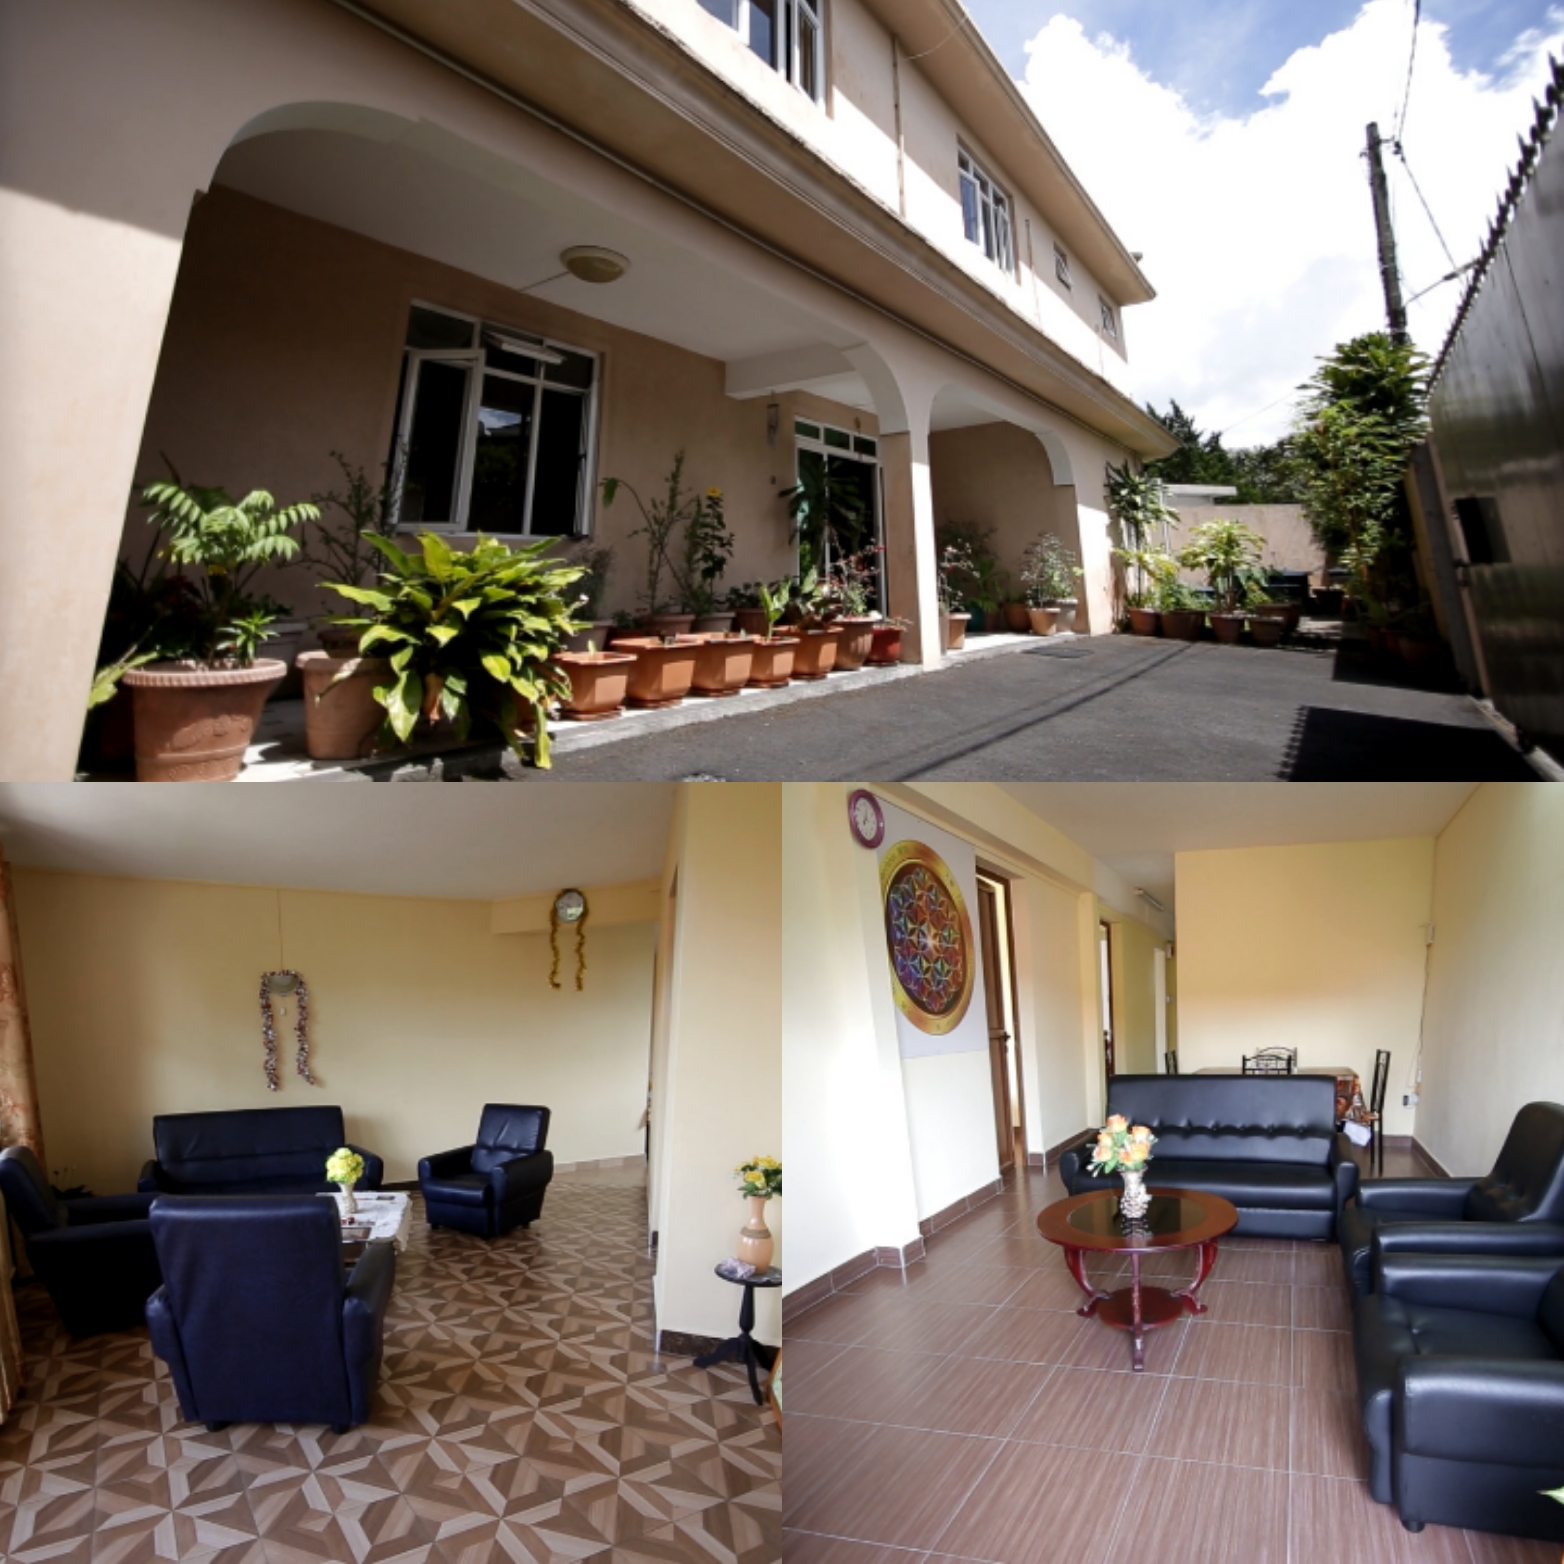 3-BEDROOM APARTMENT AT FOREST SIDE, CUREPIPE